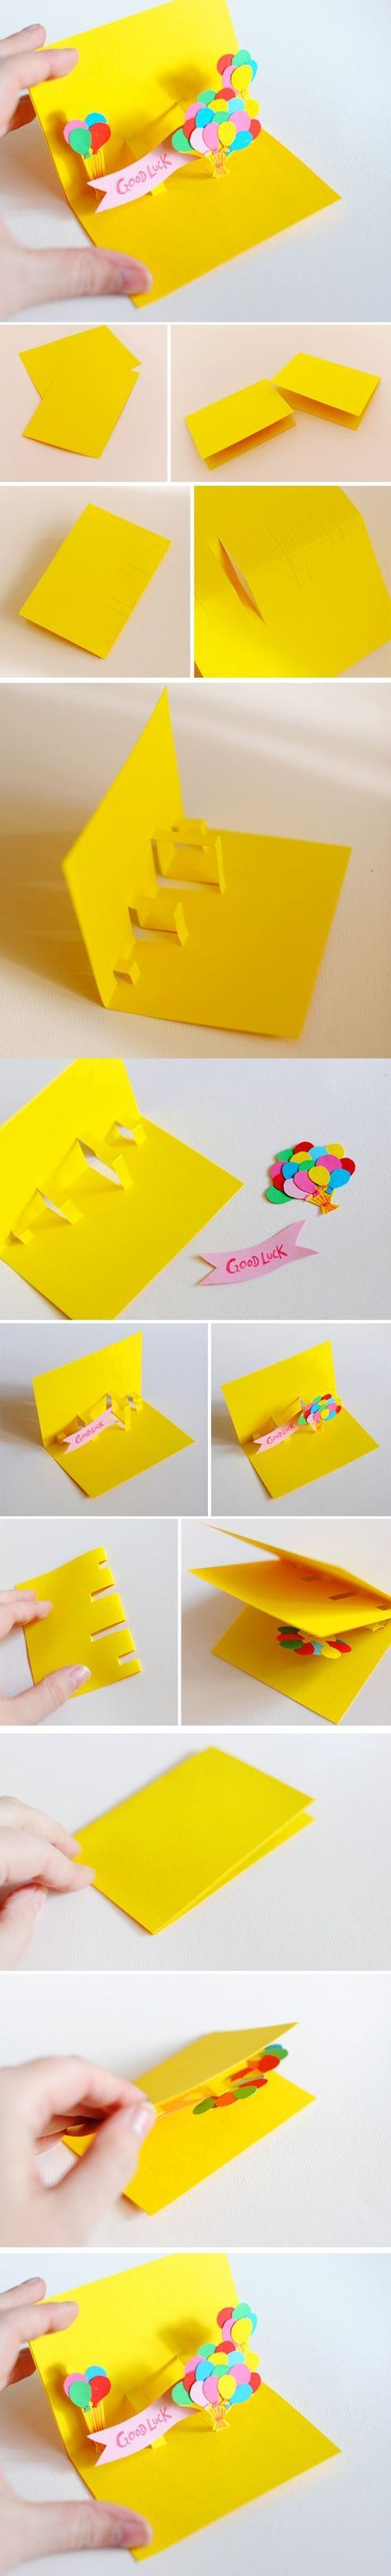 diy happy birthday cards ideas holiday kid crafts pinterest